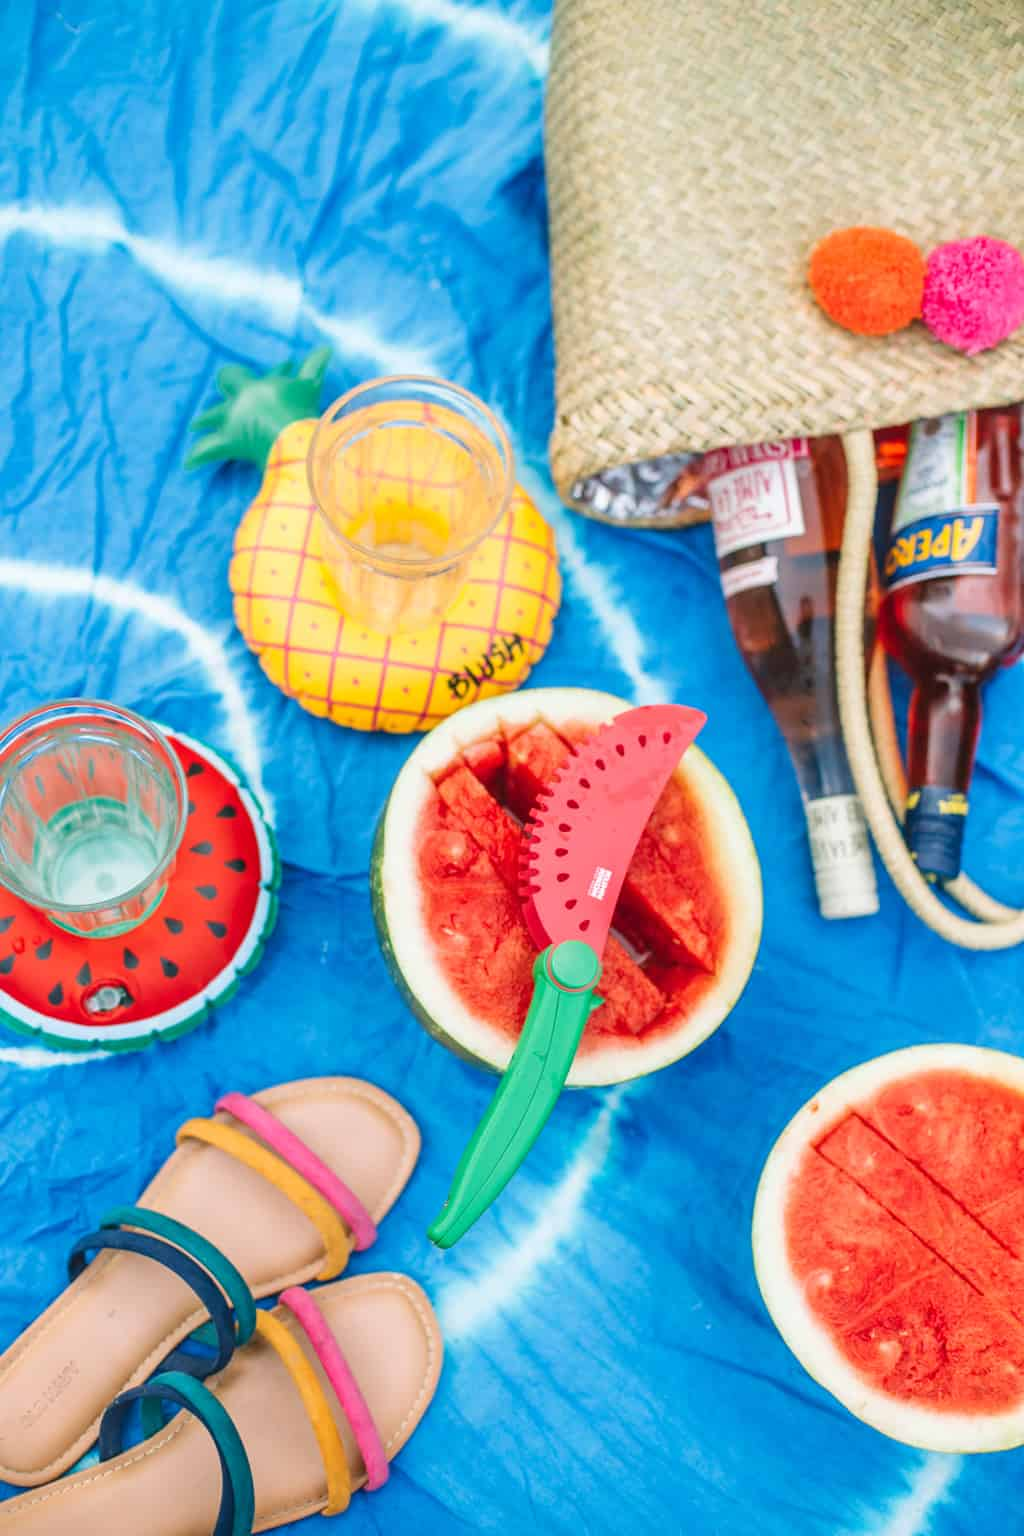 Blue tye dye beach blanket topped with sandals, watermelon and a beach bag.